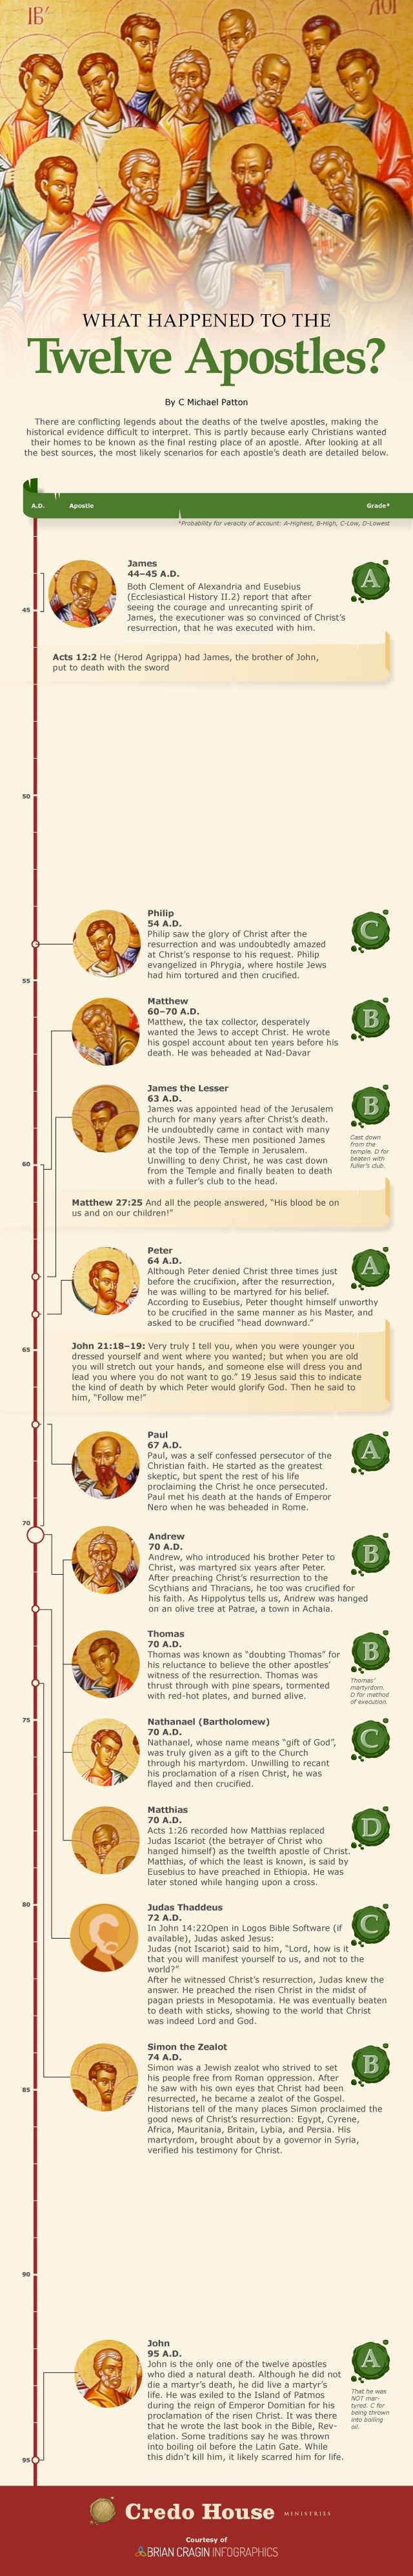 Infographic on the Death of the Apostles